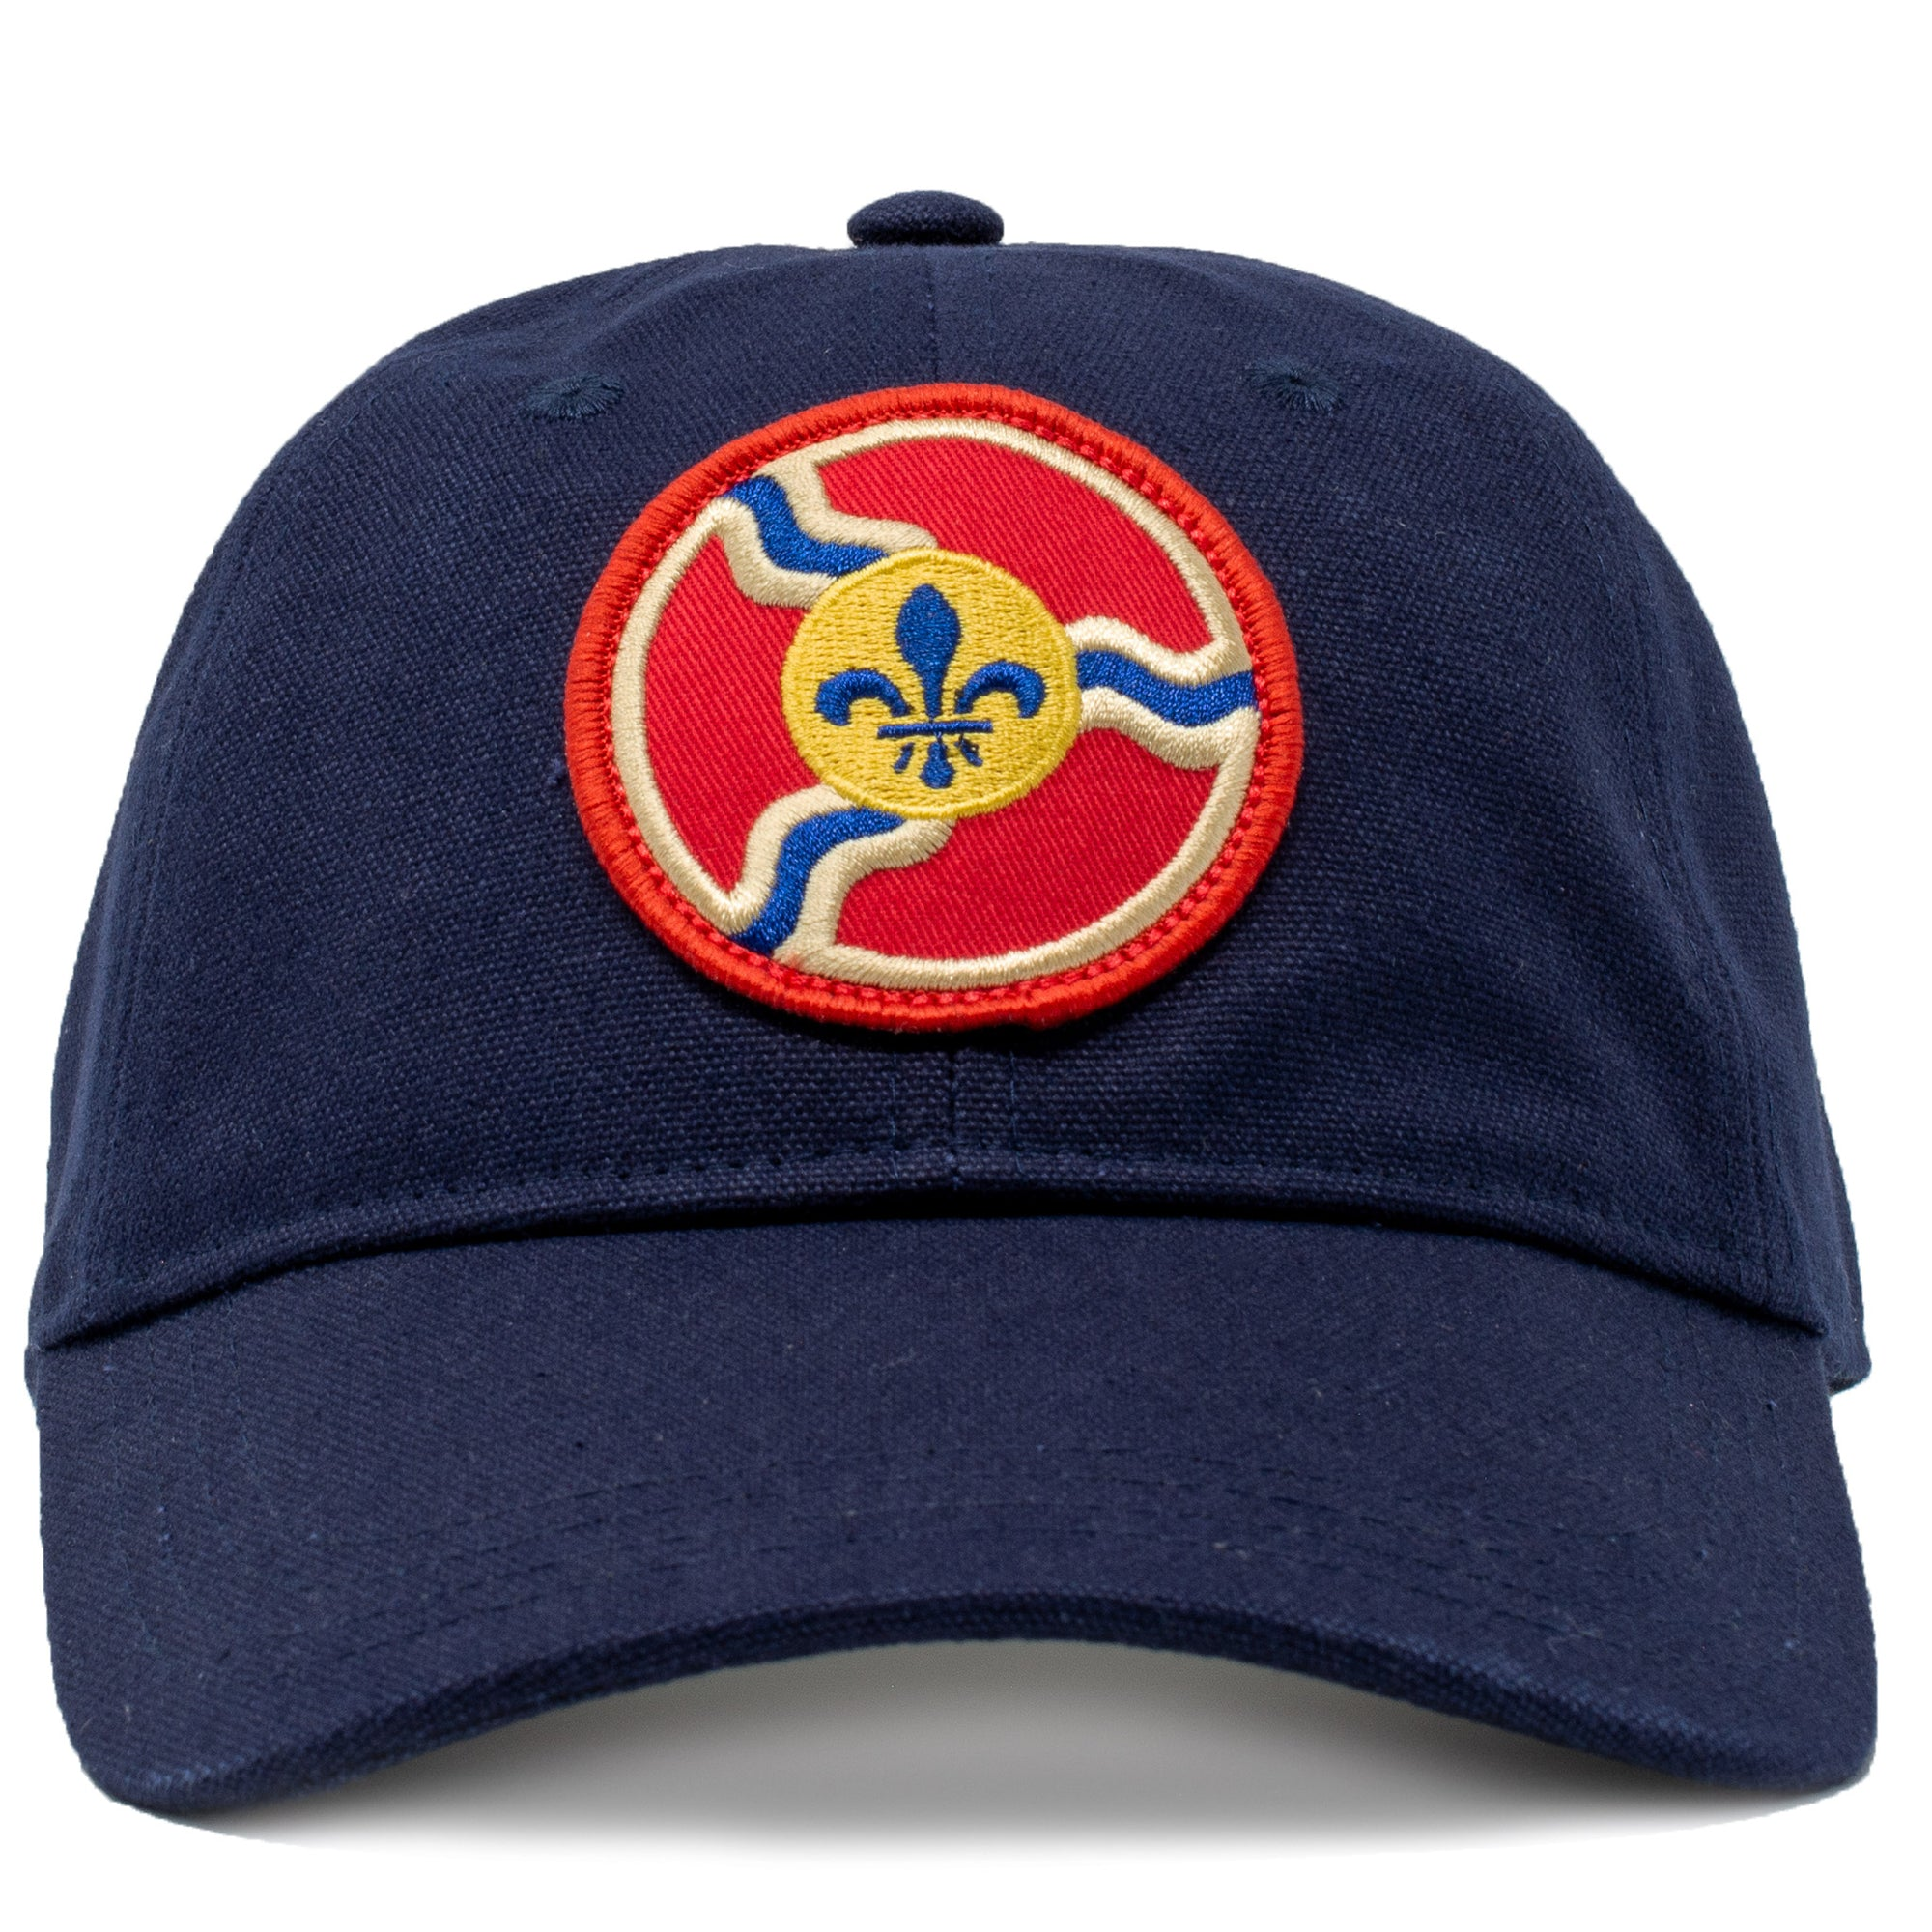 St. Louis Flag Vintage Relaxed Hat